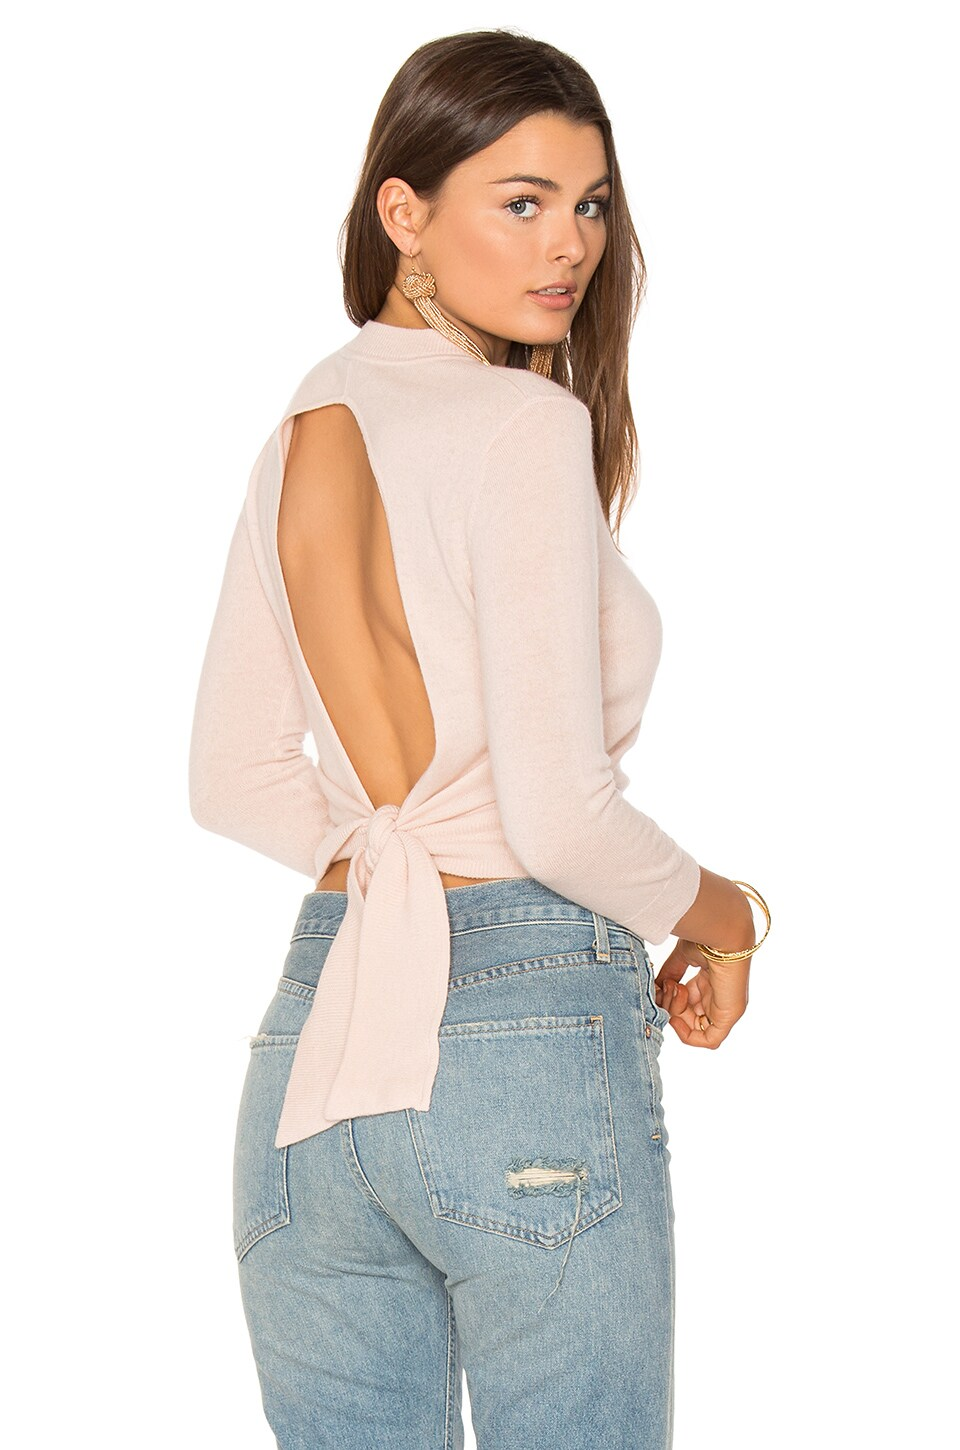 Autumn Cashmere Tie Back Crop Sweater in Bubble